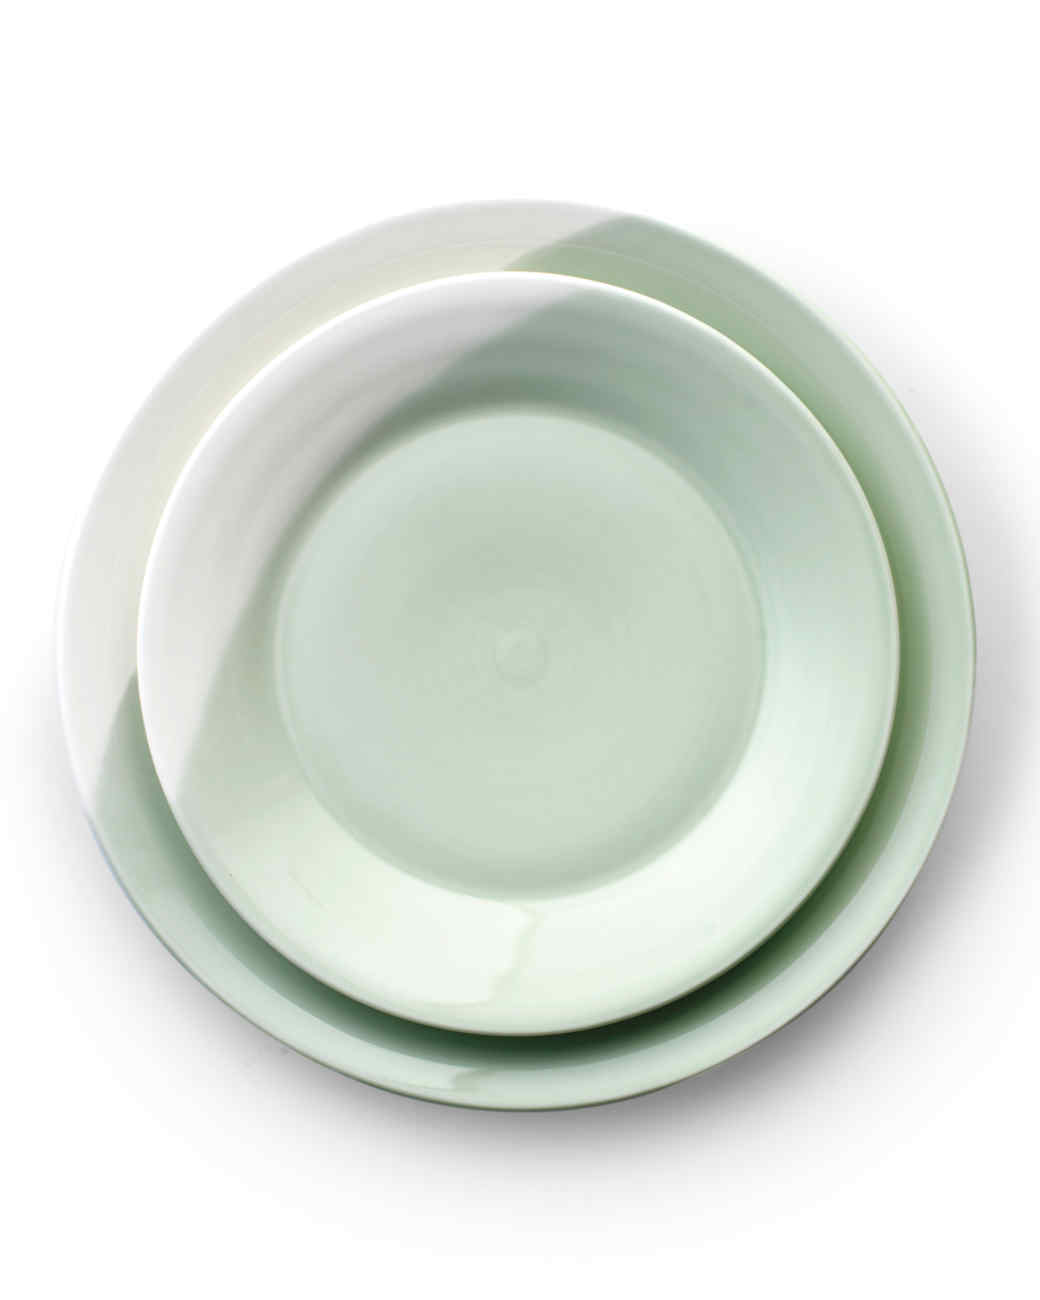 easy-entertaining-plates-mld108950.jpg